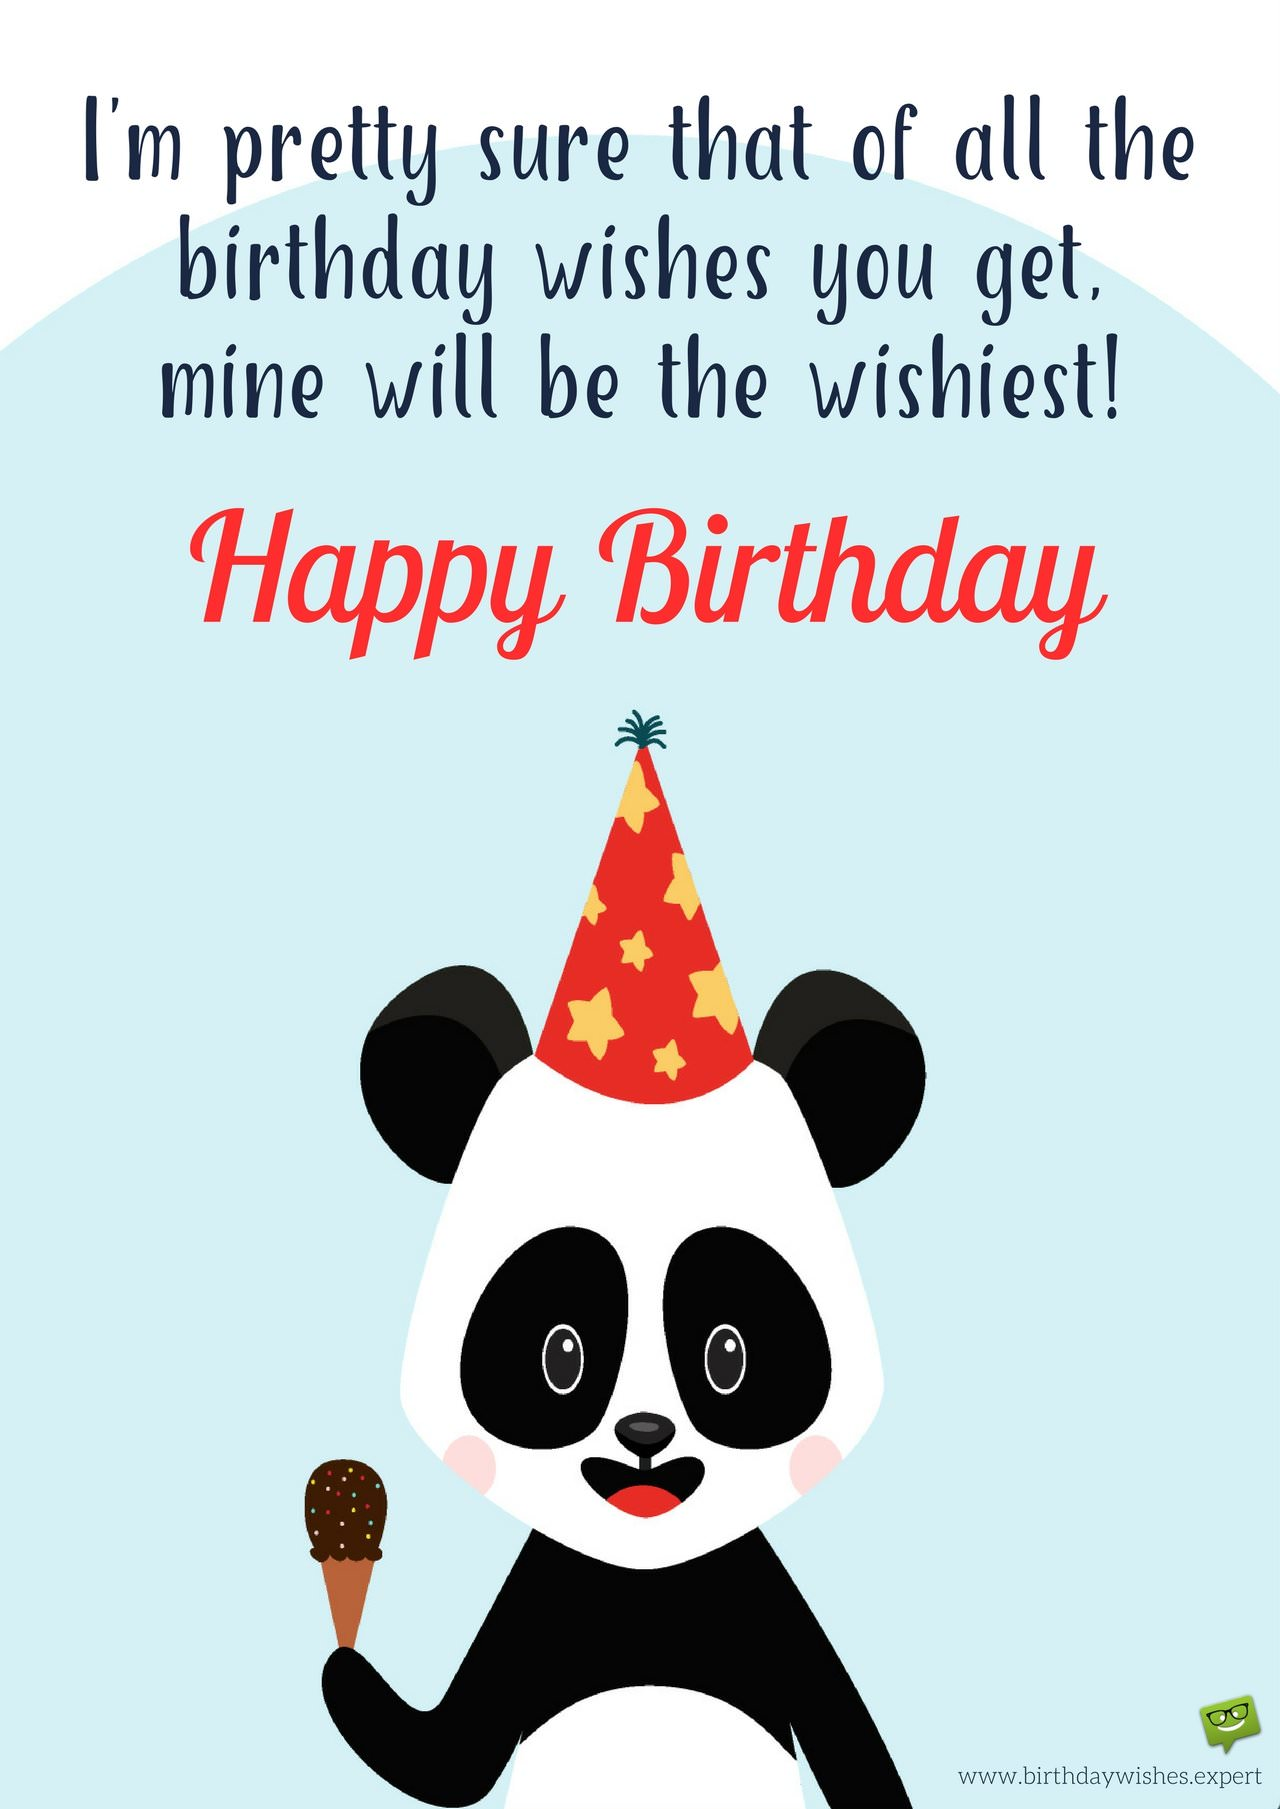 birthday message for wife funny ; Funny-birthday-wish-on-image-of-a-cute-panda-animal